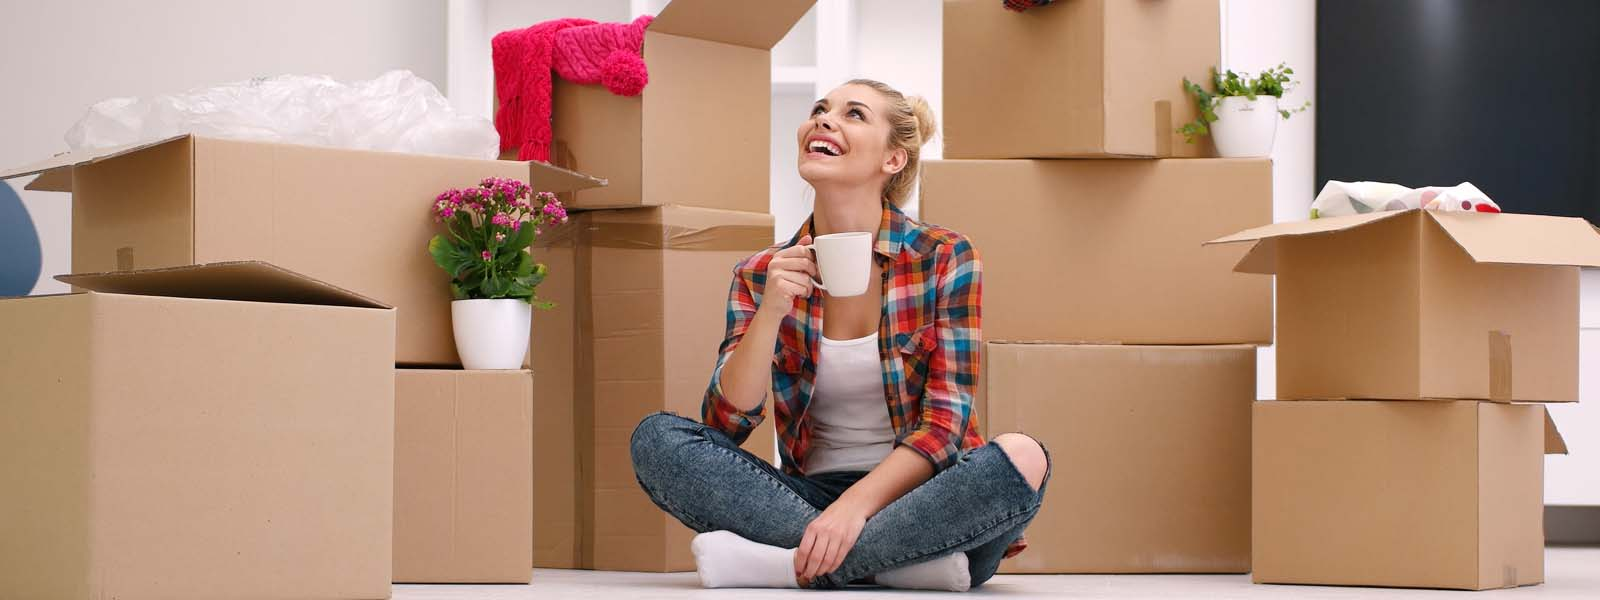 Girl sitting amoungst moving boxes